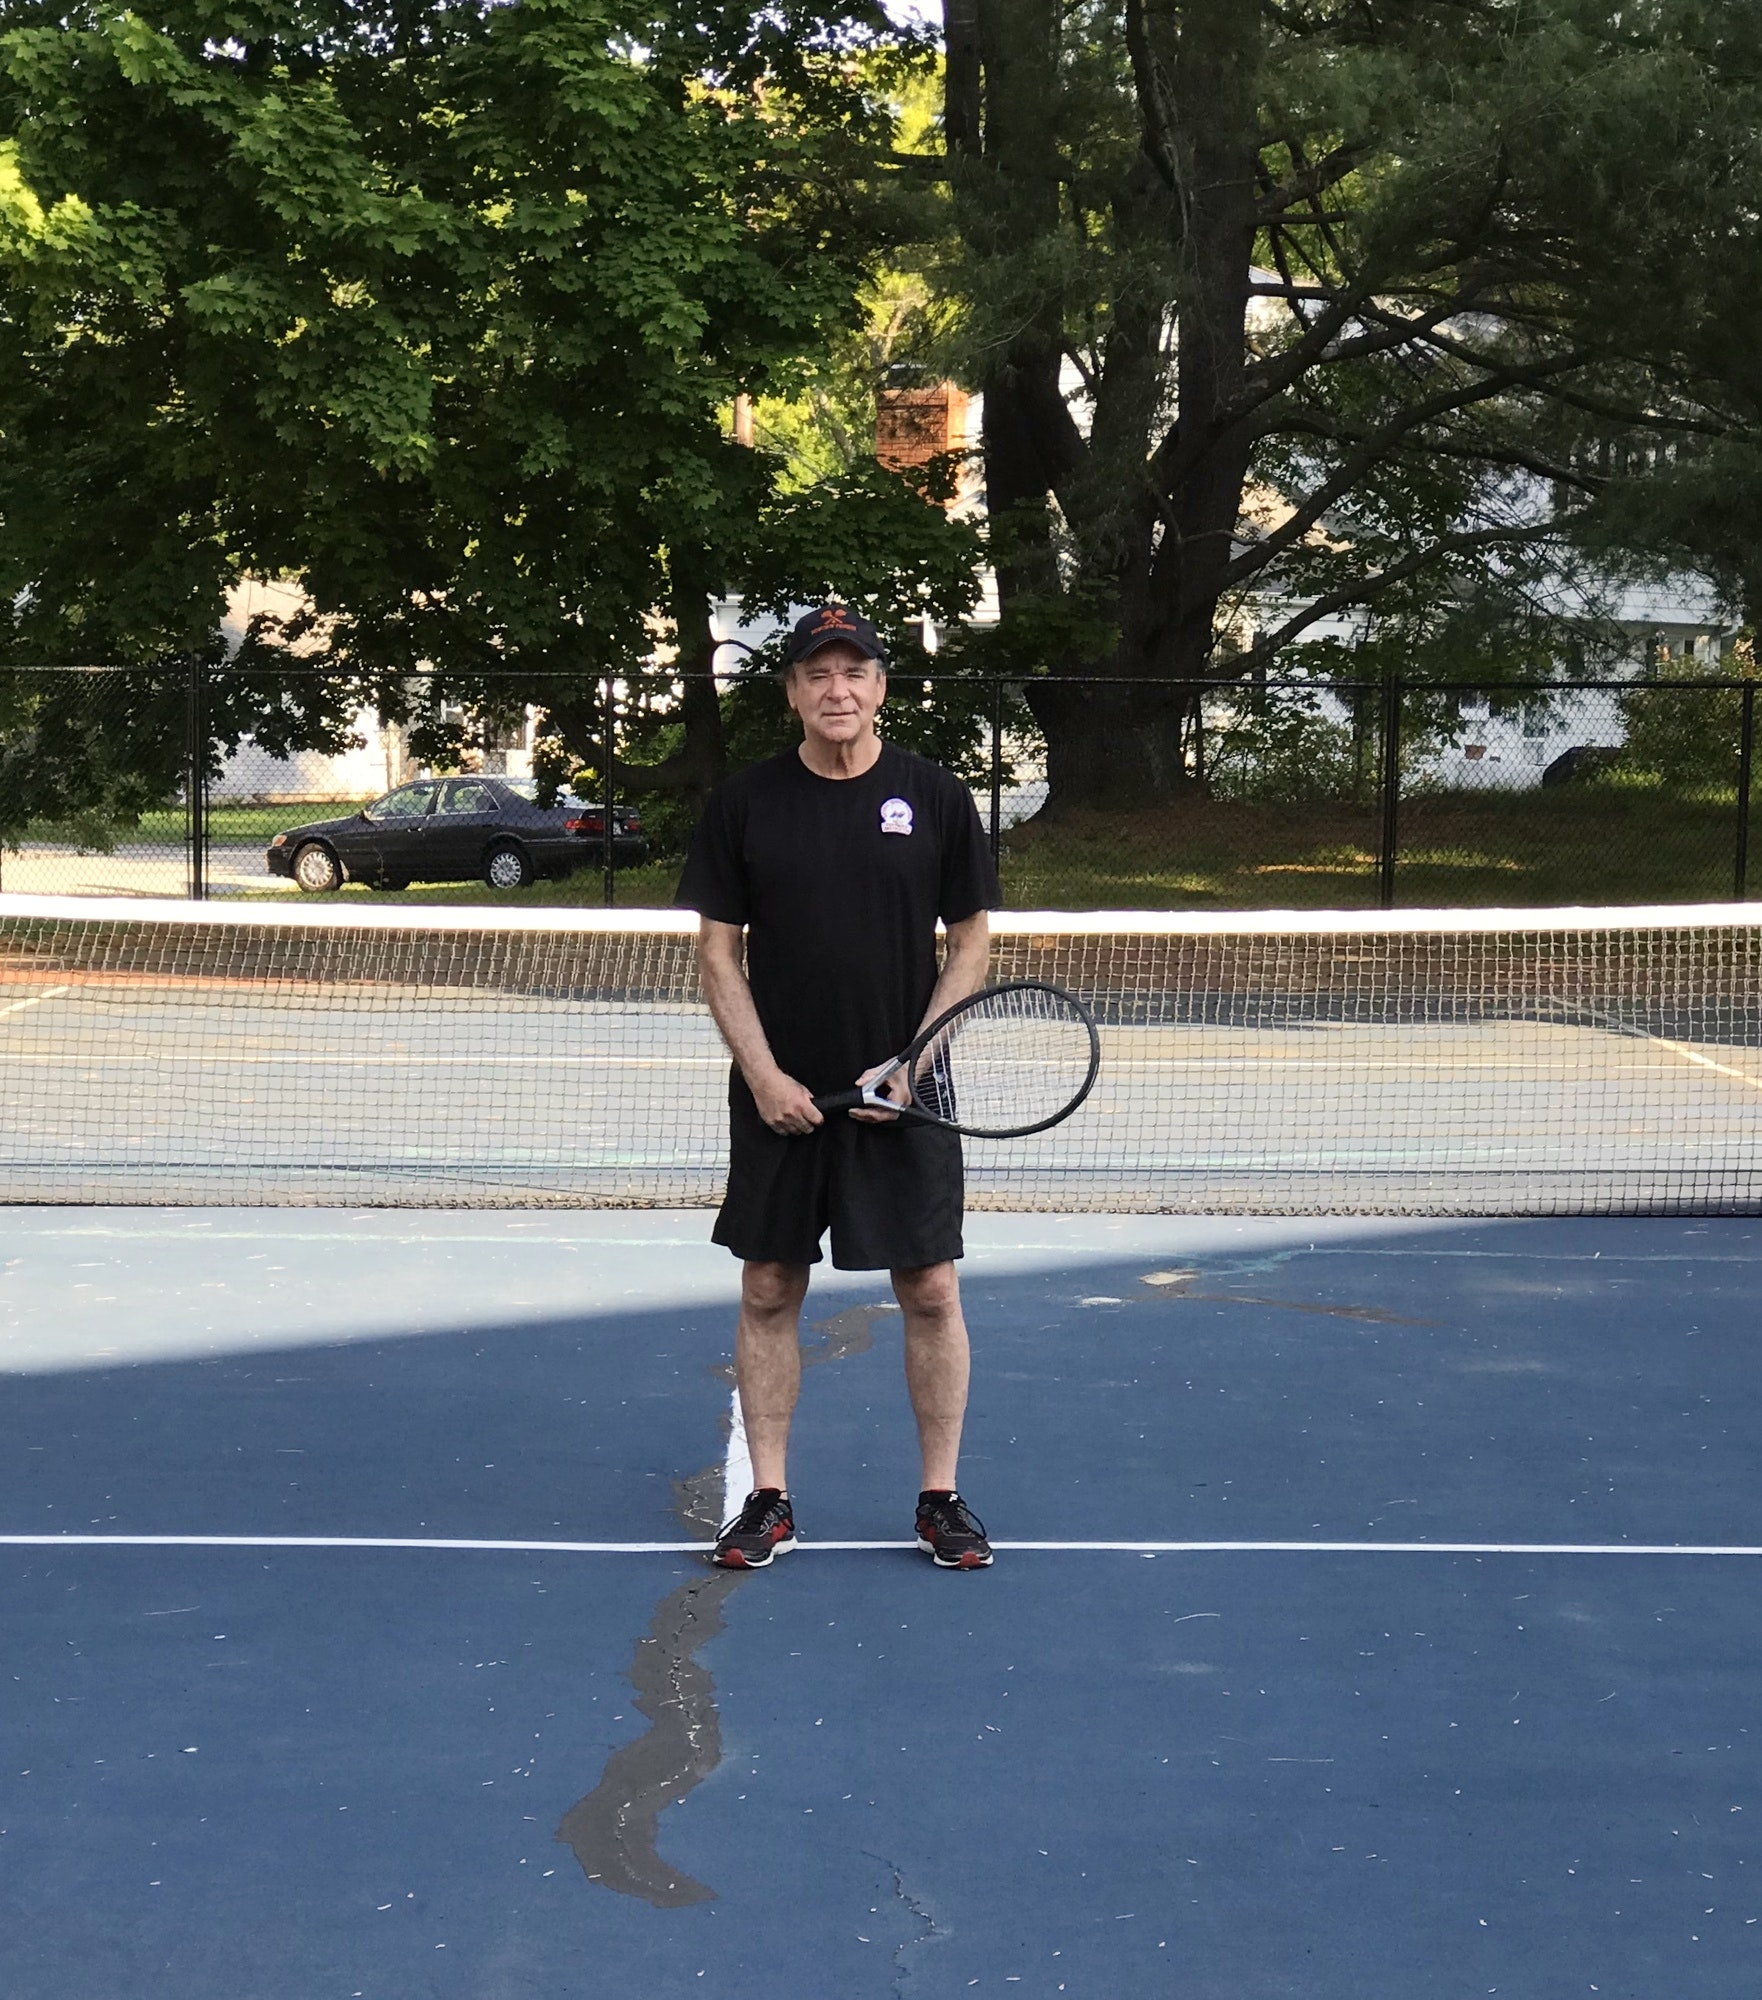 John J. teaches tennis lessons in Woburn, MA